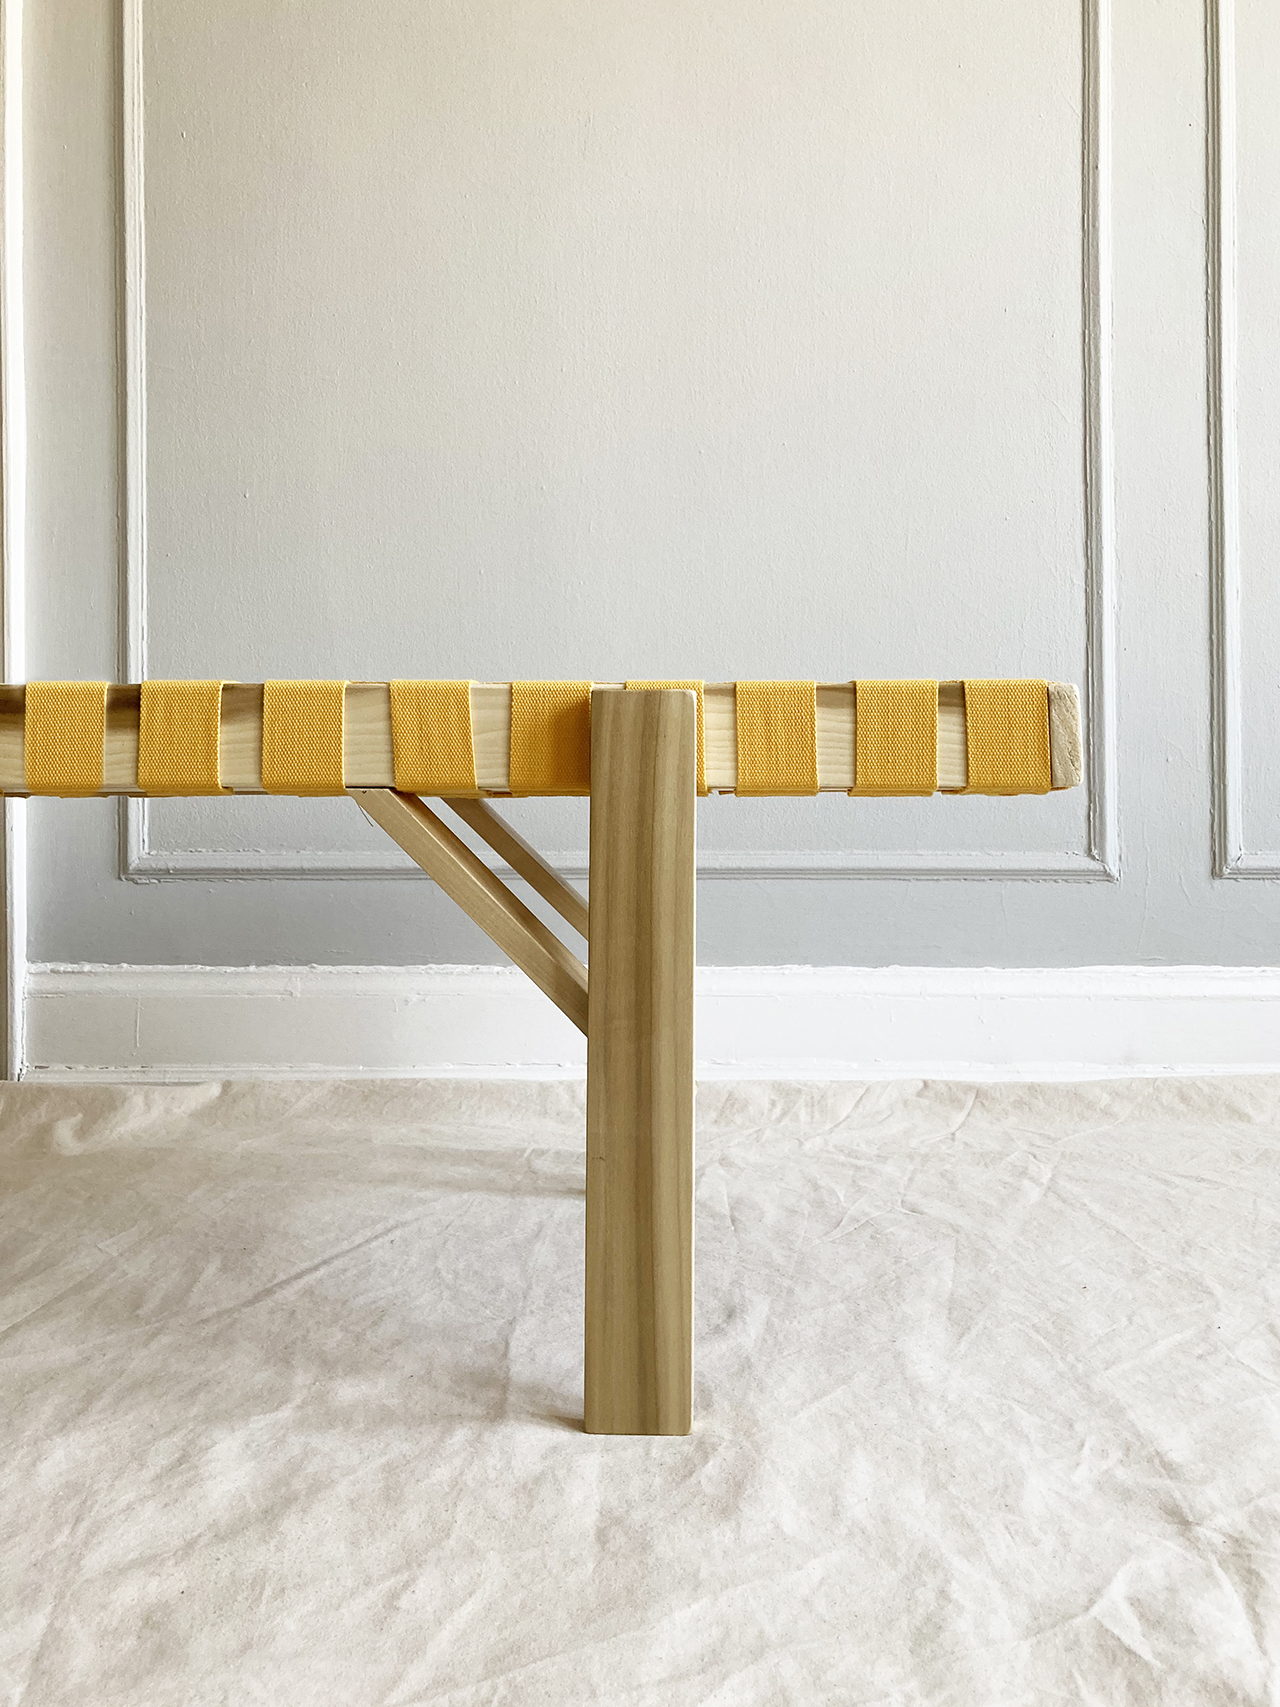 Self-assembly Shares 5 New Furniture DIY Projects